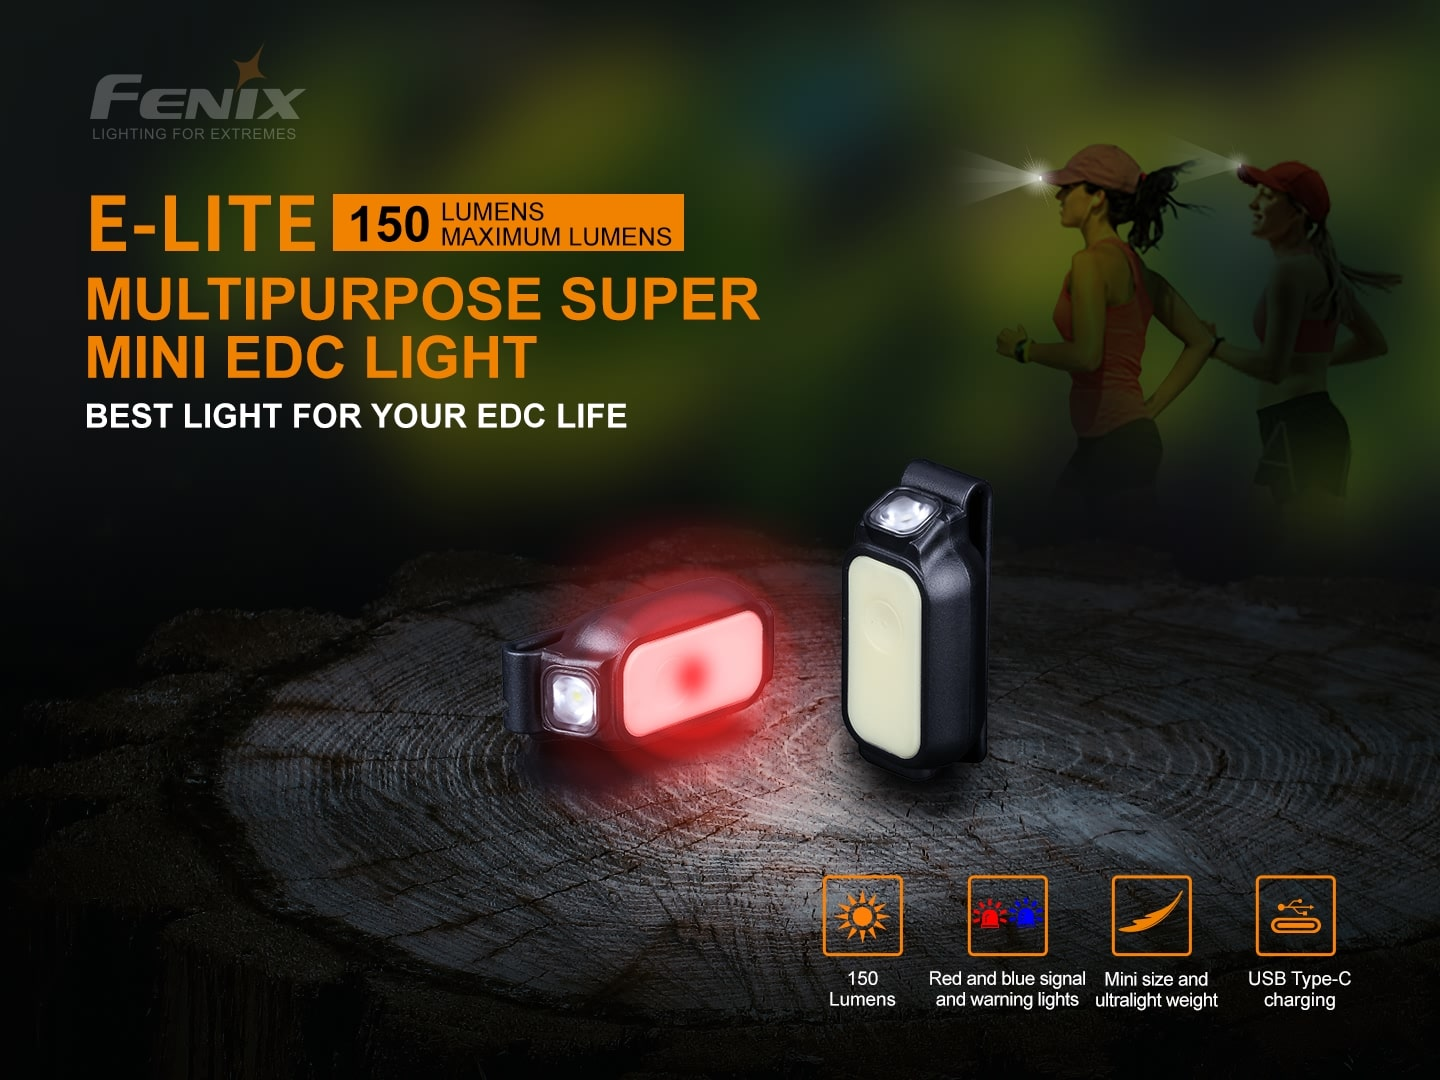 Fenix E-Lite LED Mini Torch Light, Fenix E Lite Ultimate Compact Light for Outdoors EDC, Mini Light for Bicycle, Backpack, Cap, Waist or Pocket, Signalling walk through Light